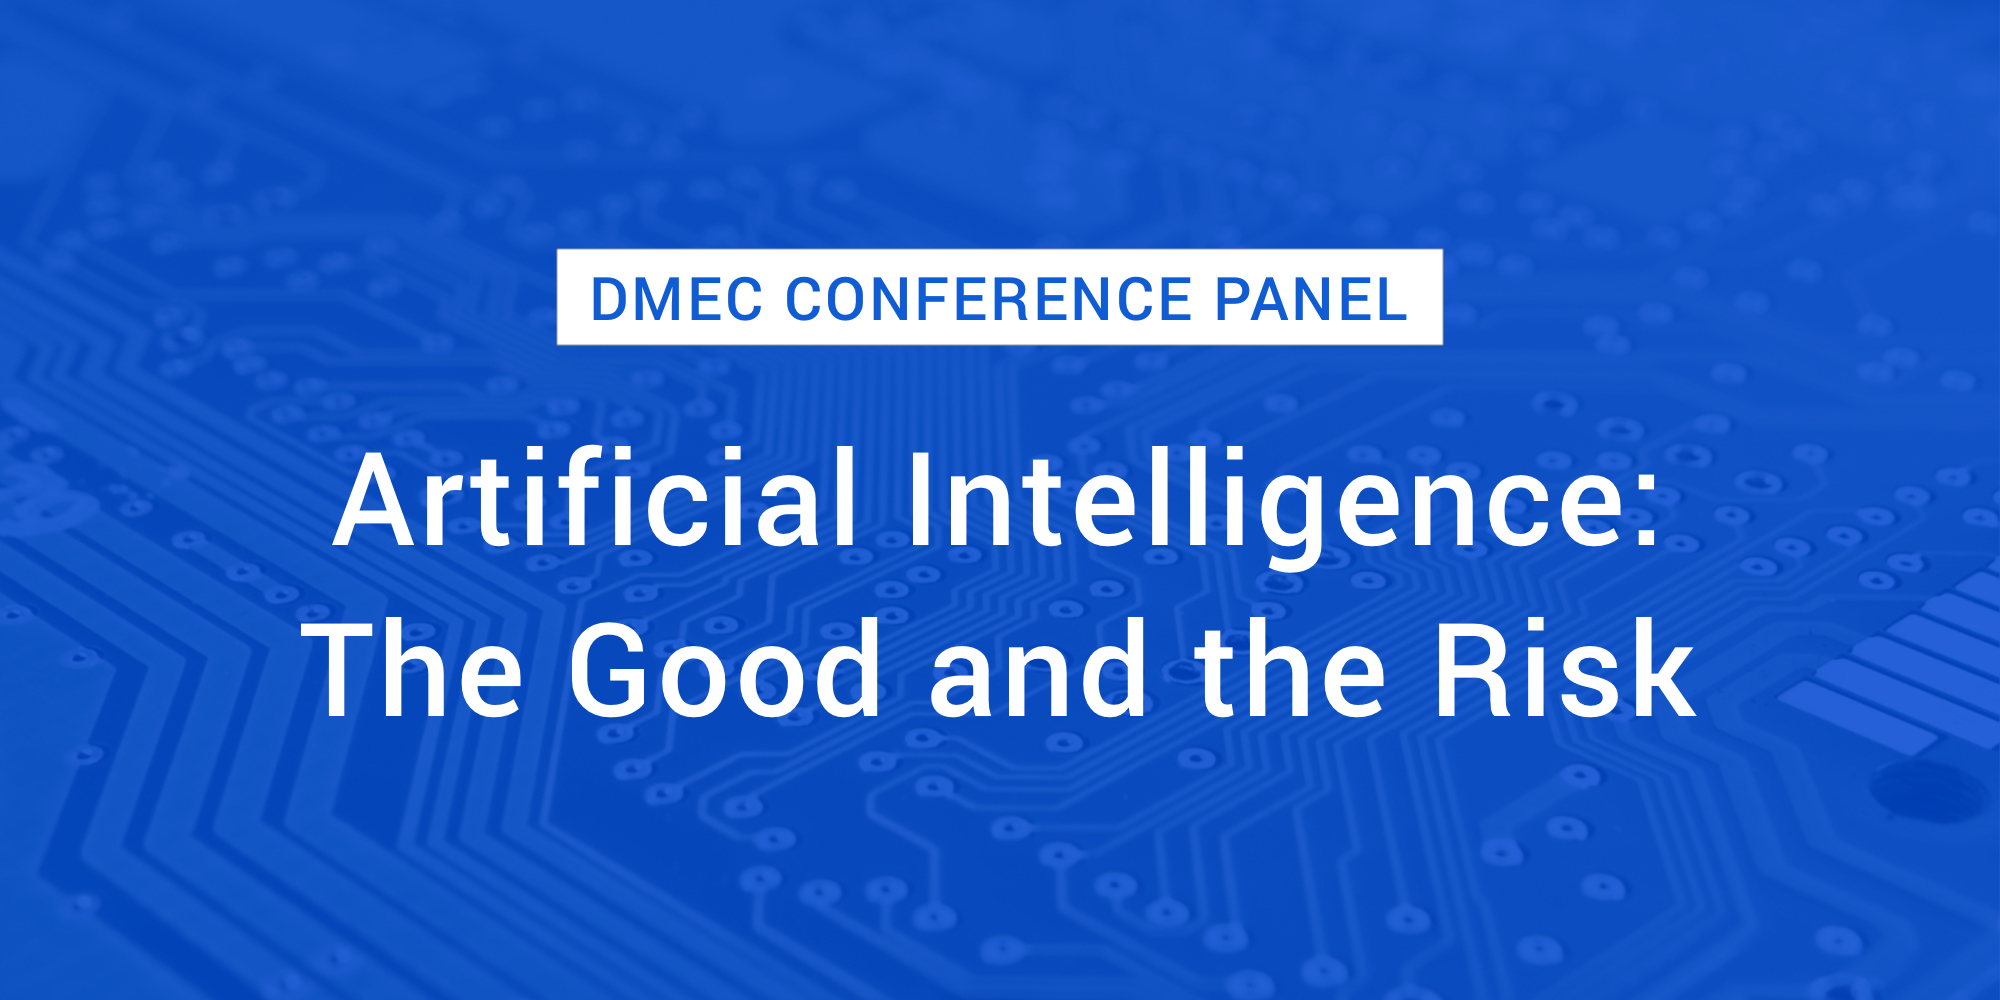 DMEC Conference Panel: Artificial Intelligence - The Good and the Risk